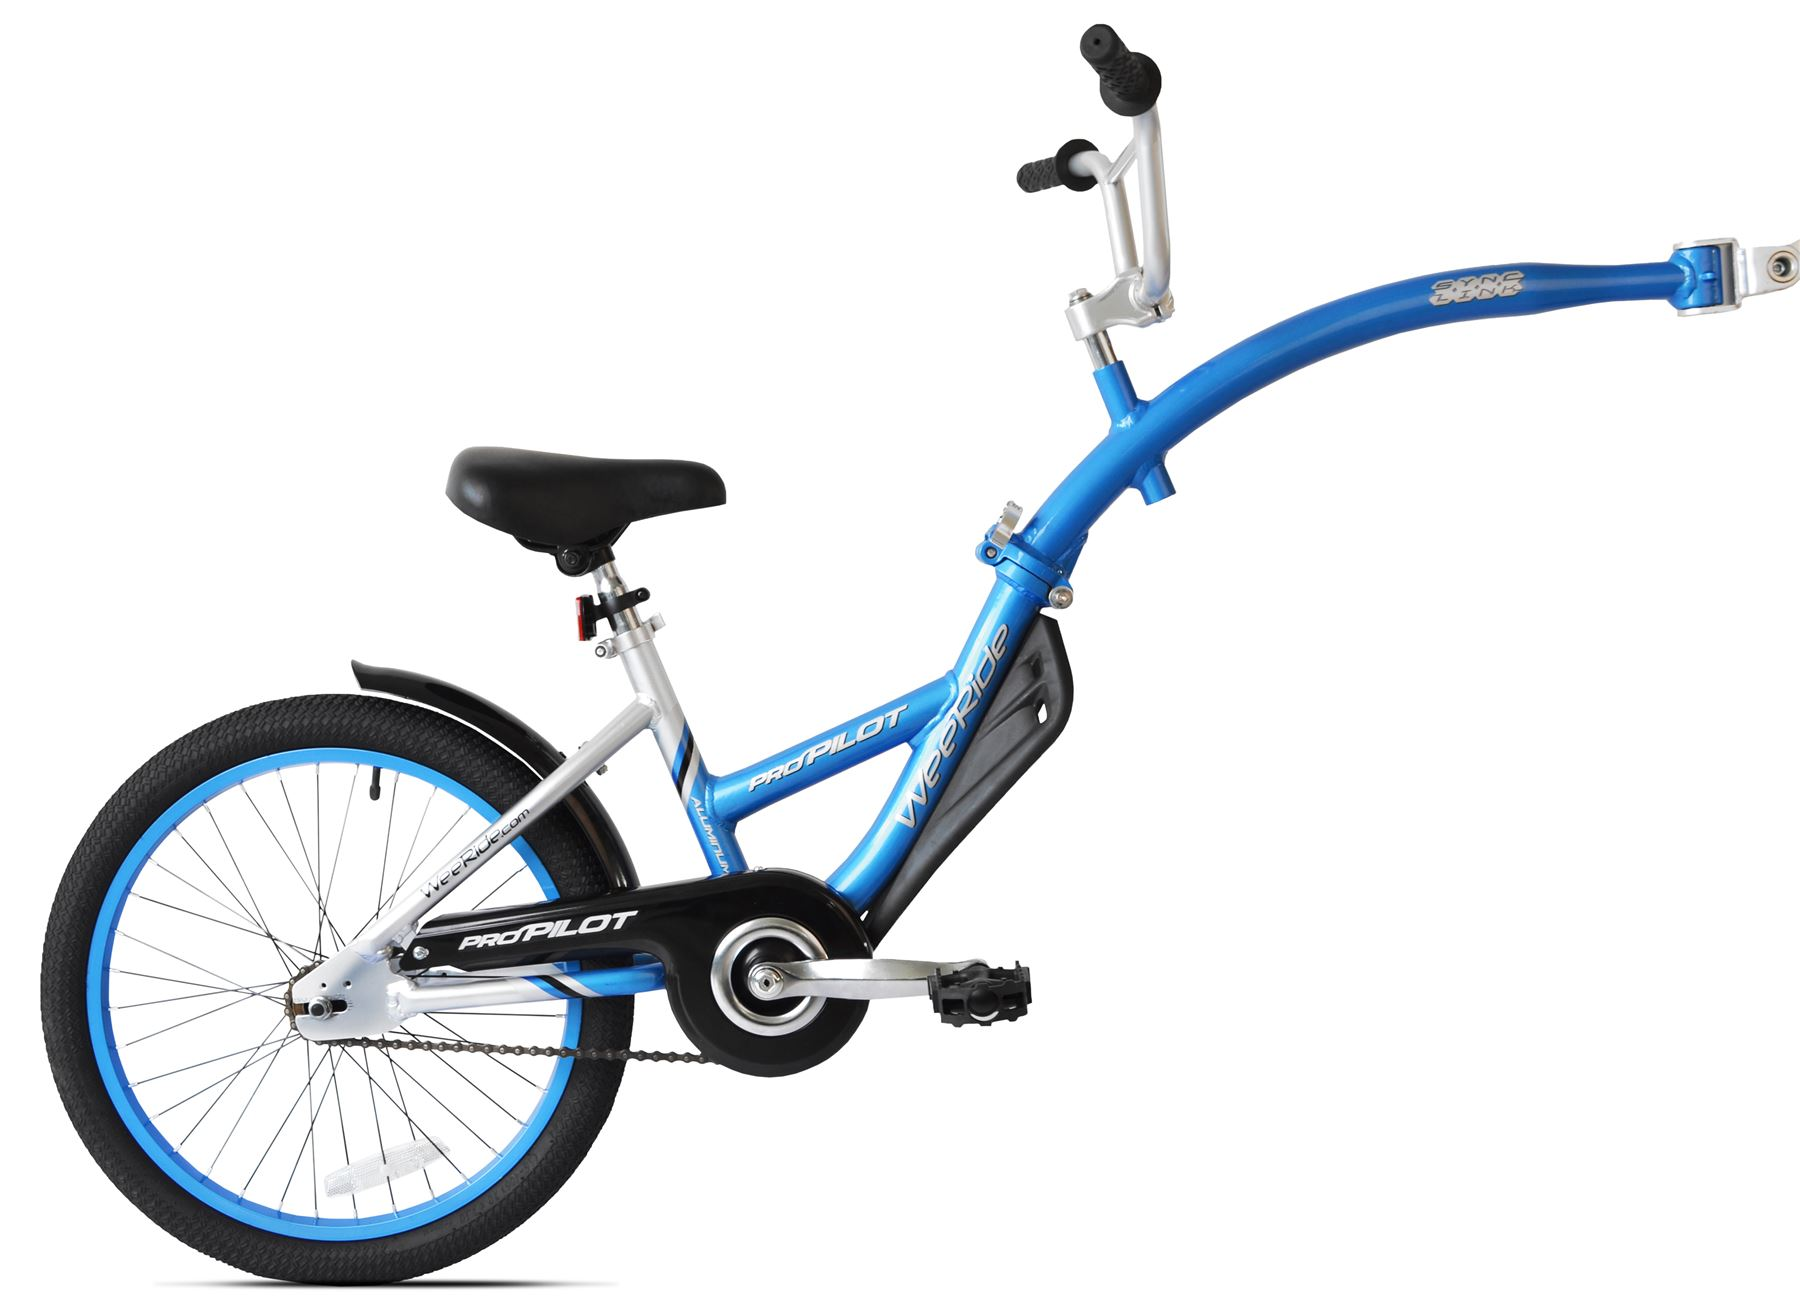 4100a17ccad WeeRide Pro Pilot Tagalong Blue Child Bike Extension Trailer Toddler Bicycle